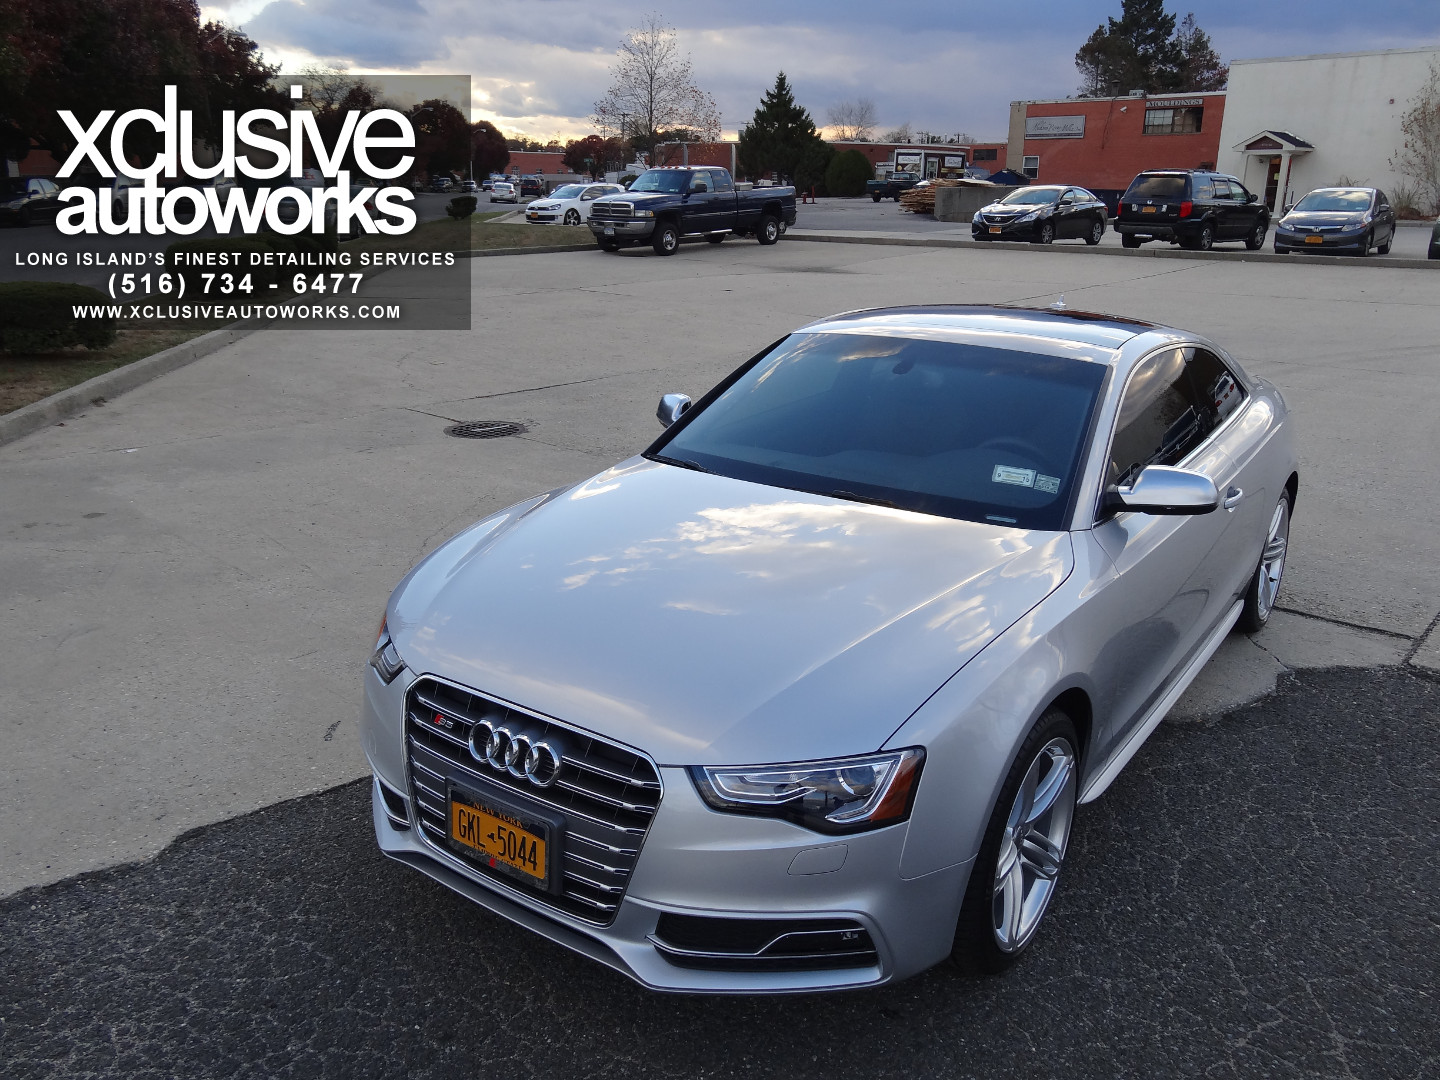 audi ny long image island condition fs beautiful black sale in other over vehicles forums